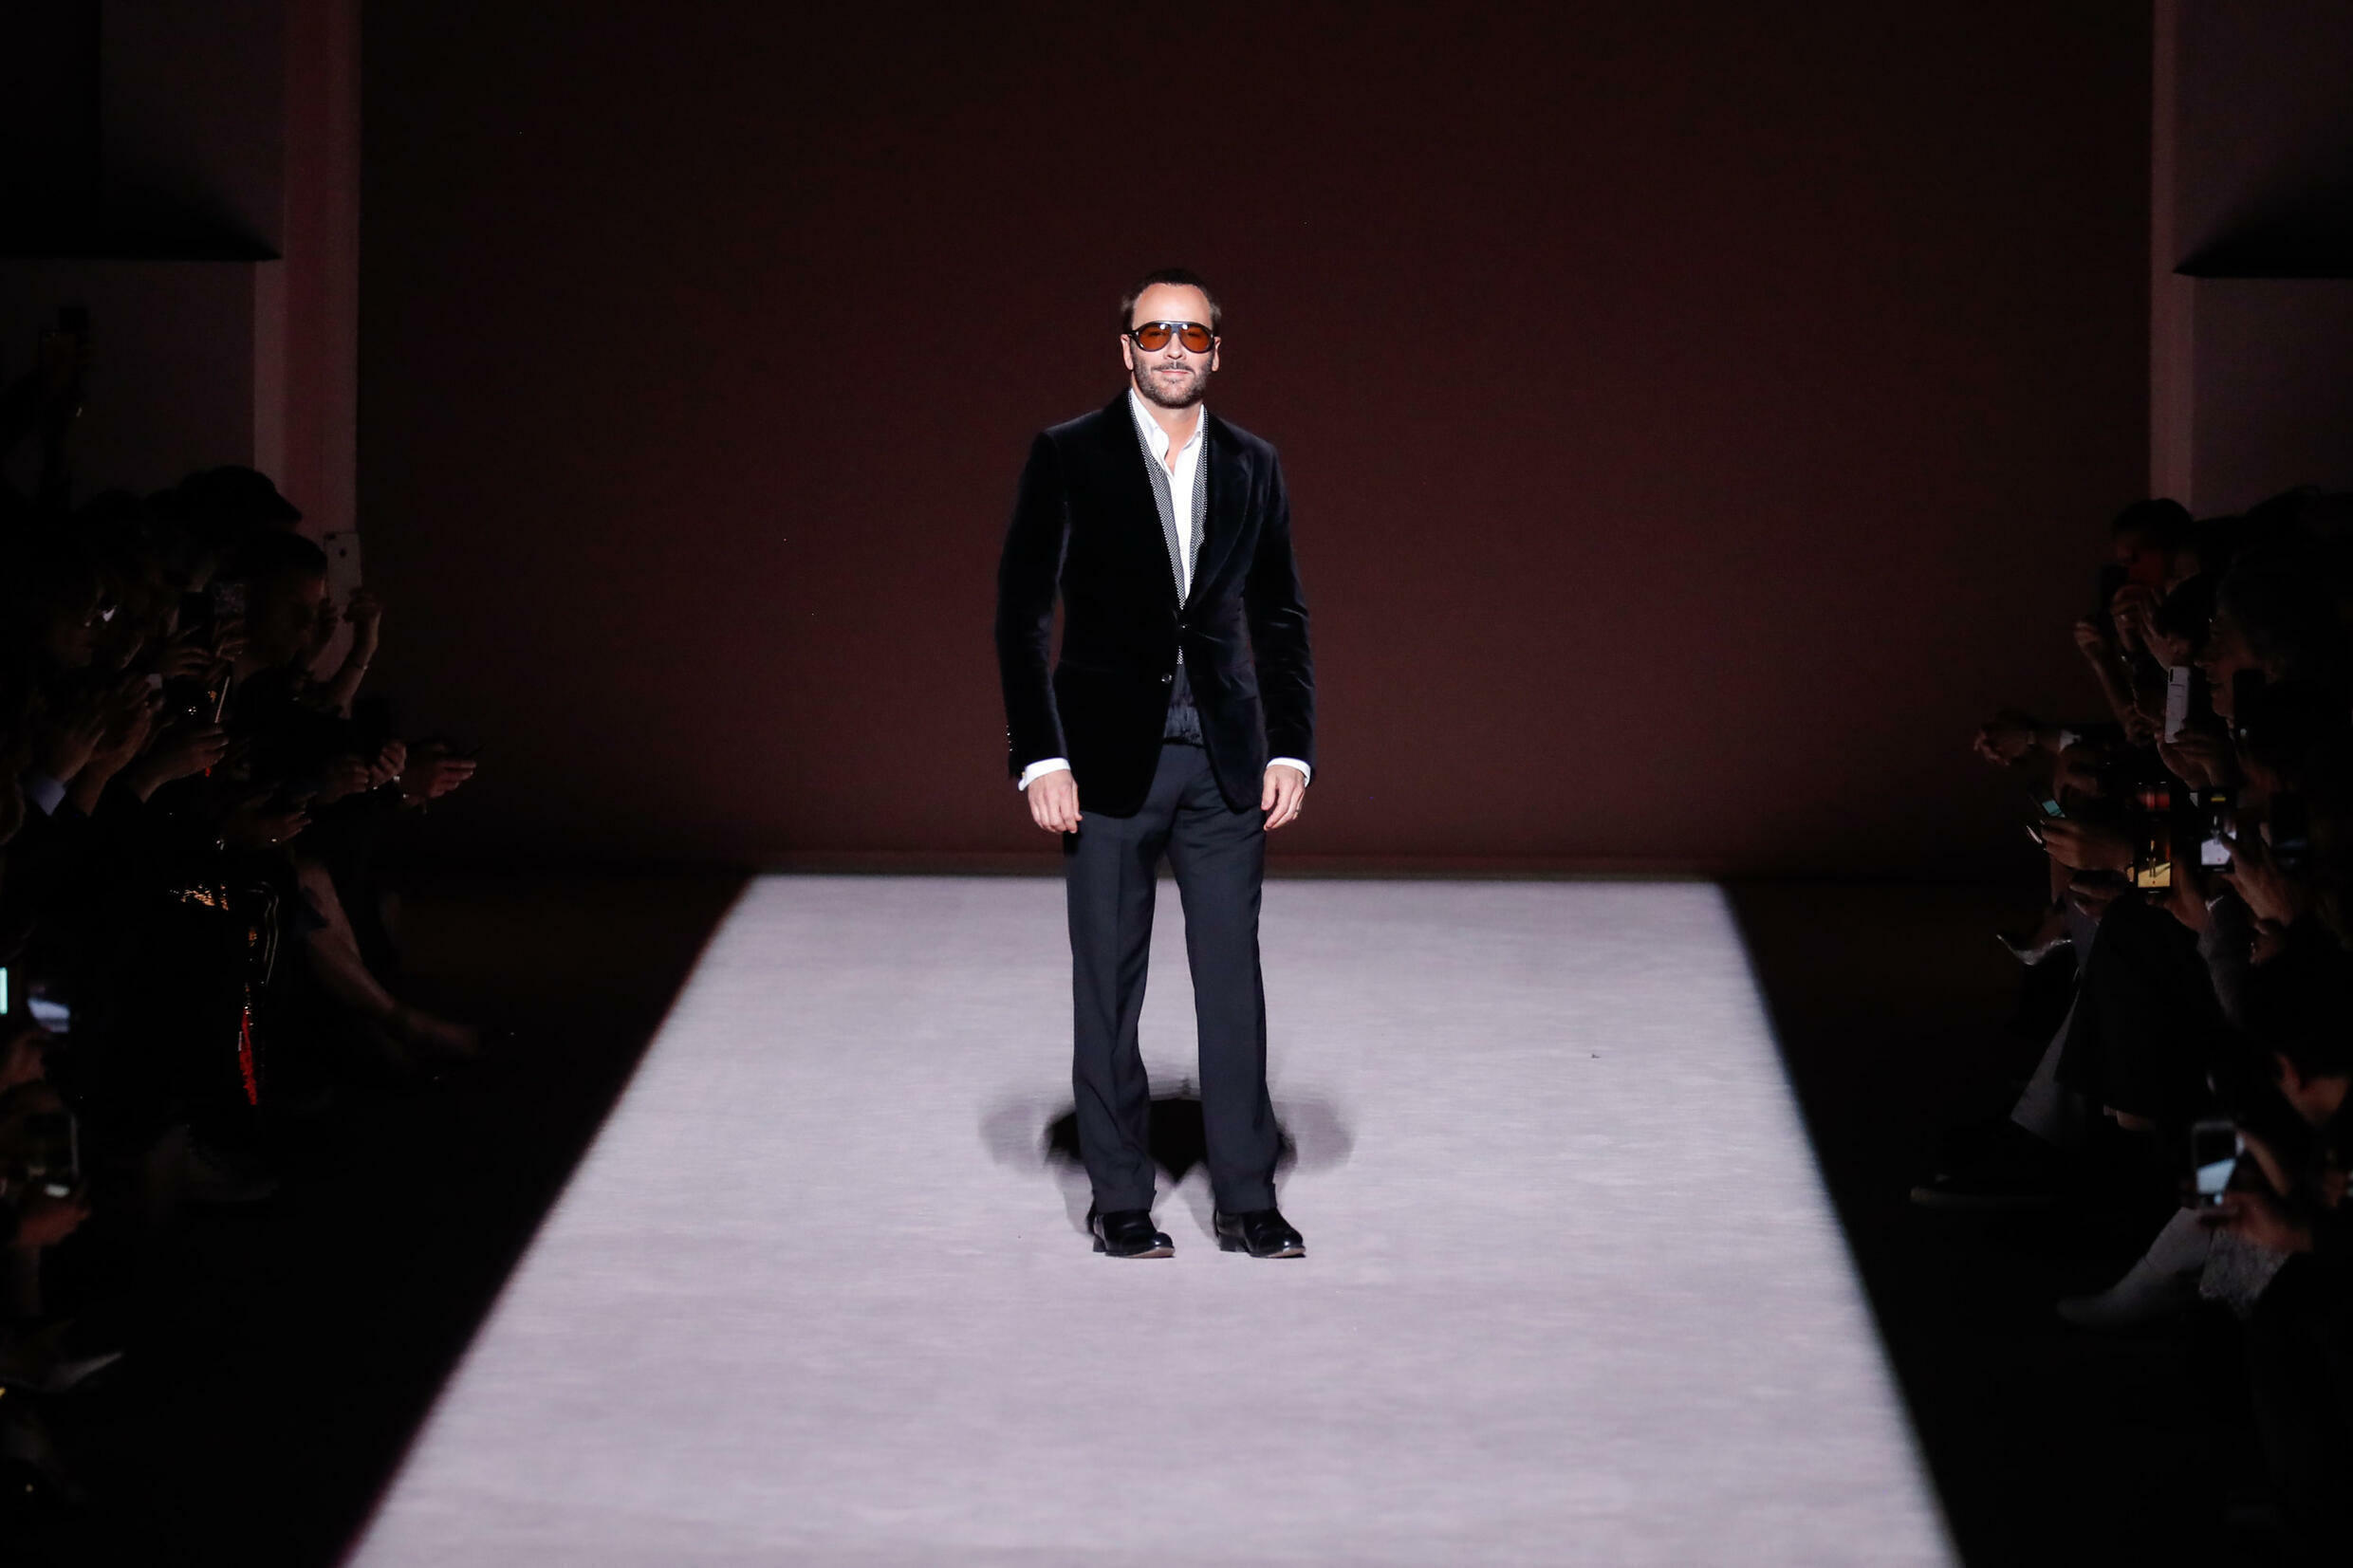 Designer Tom Ford, whose work will close Fashion Week on September 12, 2021, is seen after his February 2019 show in New York